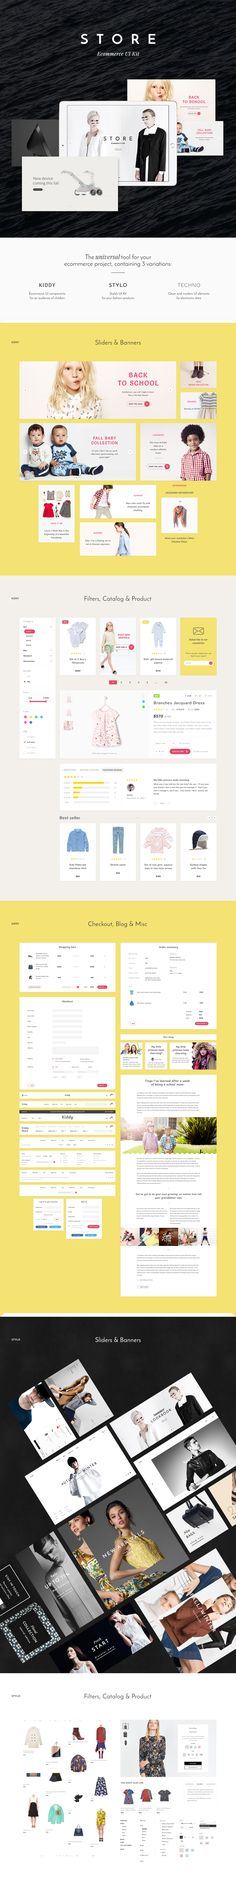 Store UI Kit is a large set of clean and modern UI components for your e-commerce project.The kit has 3 variations:1) Kiddy – charming ui components for cutest clothing and toys.2) Stylo – clean and stylish ui elements for your fashion products.…